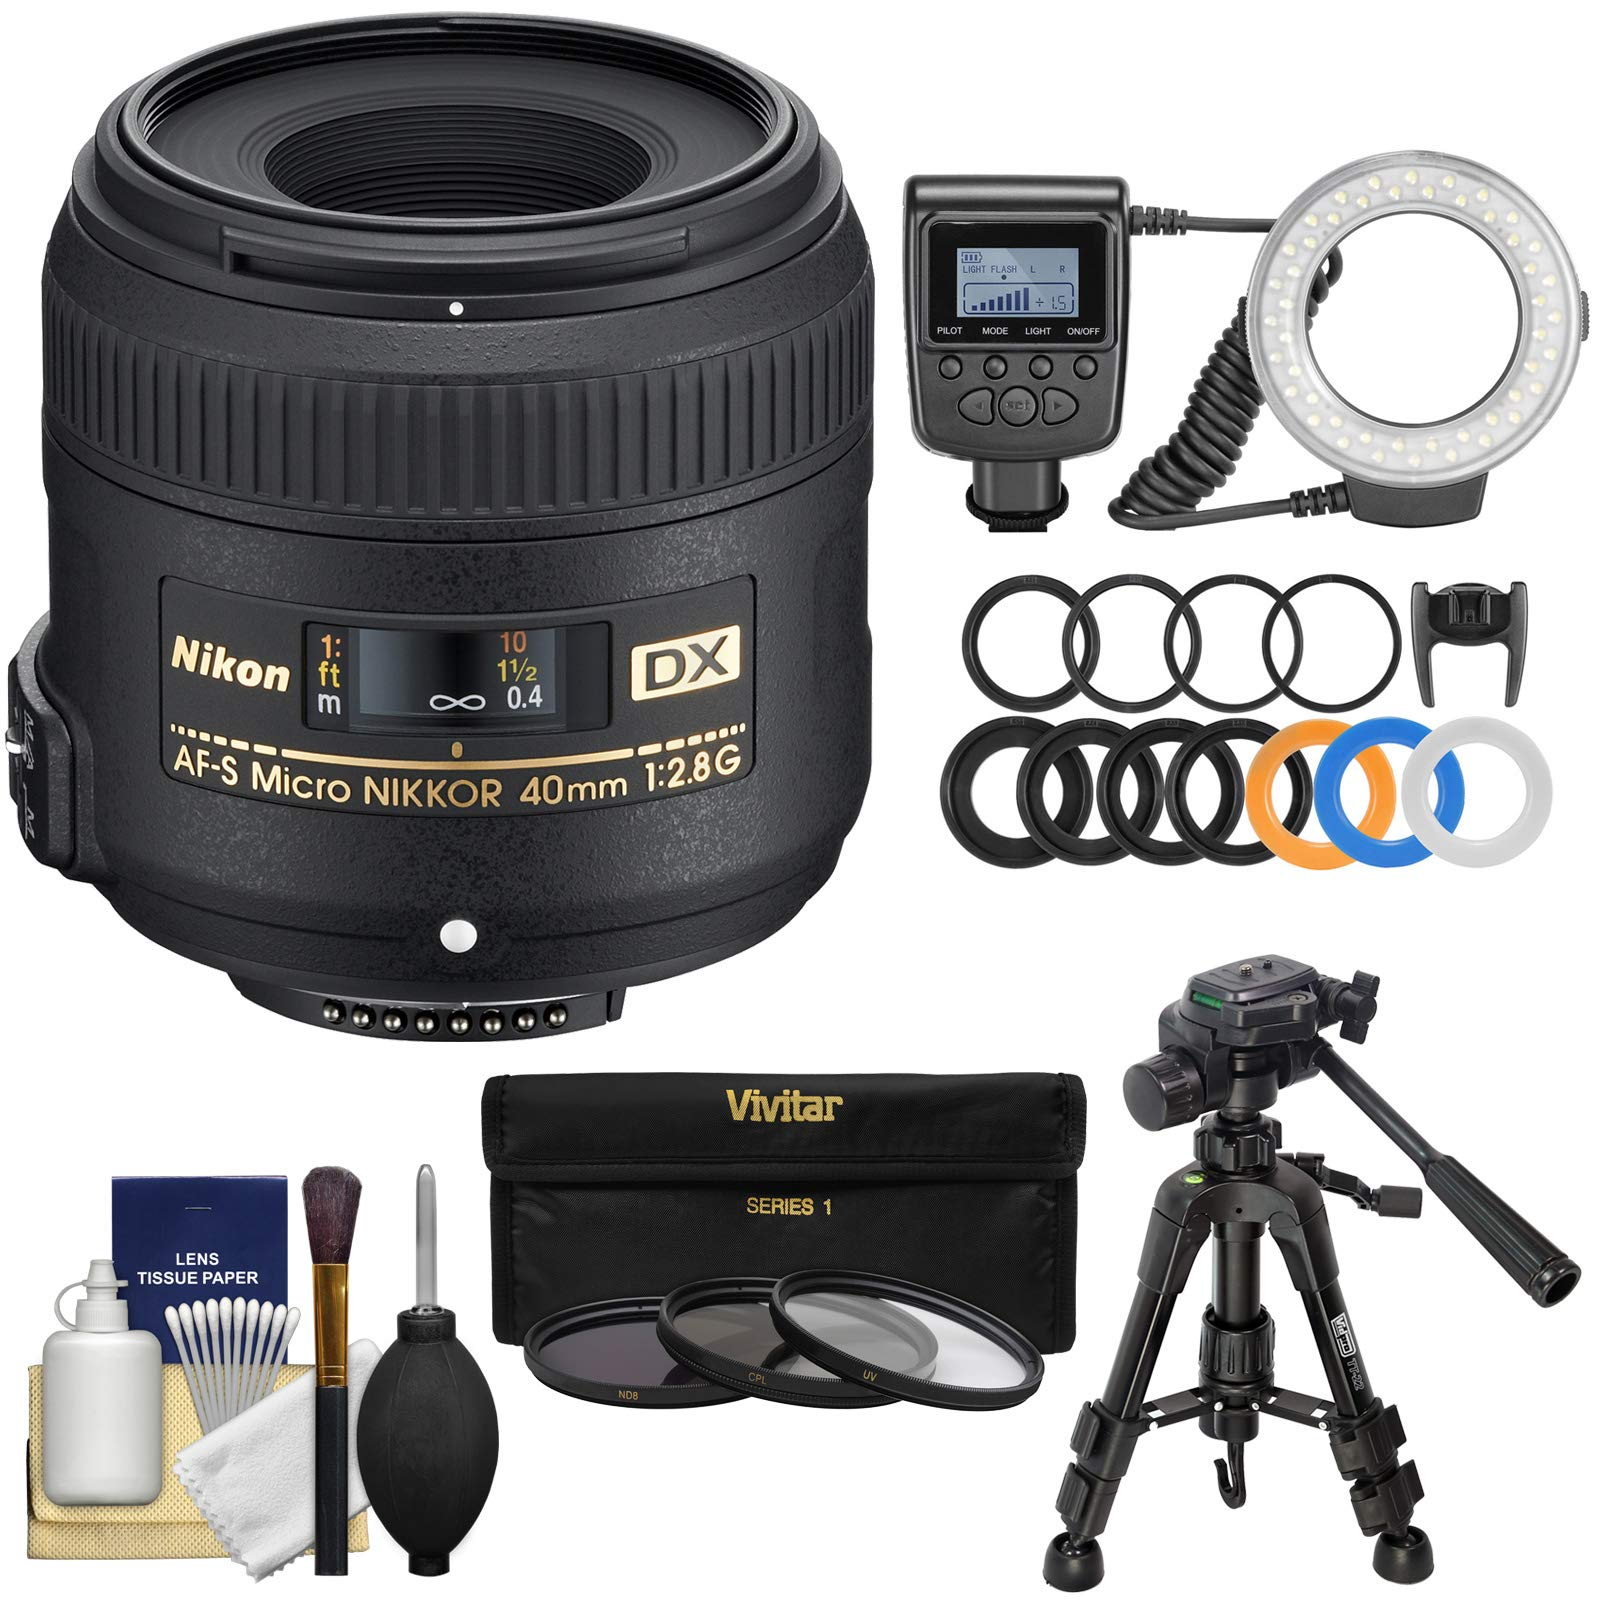 Nikon 40mm f/2.8 G DX AF-S Micro-Nikkor Lens with Ring Light + Macro Tripod + 3 UV/CPL/ND8 Filters + Kit